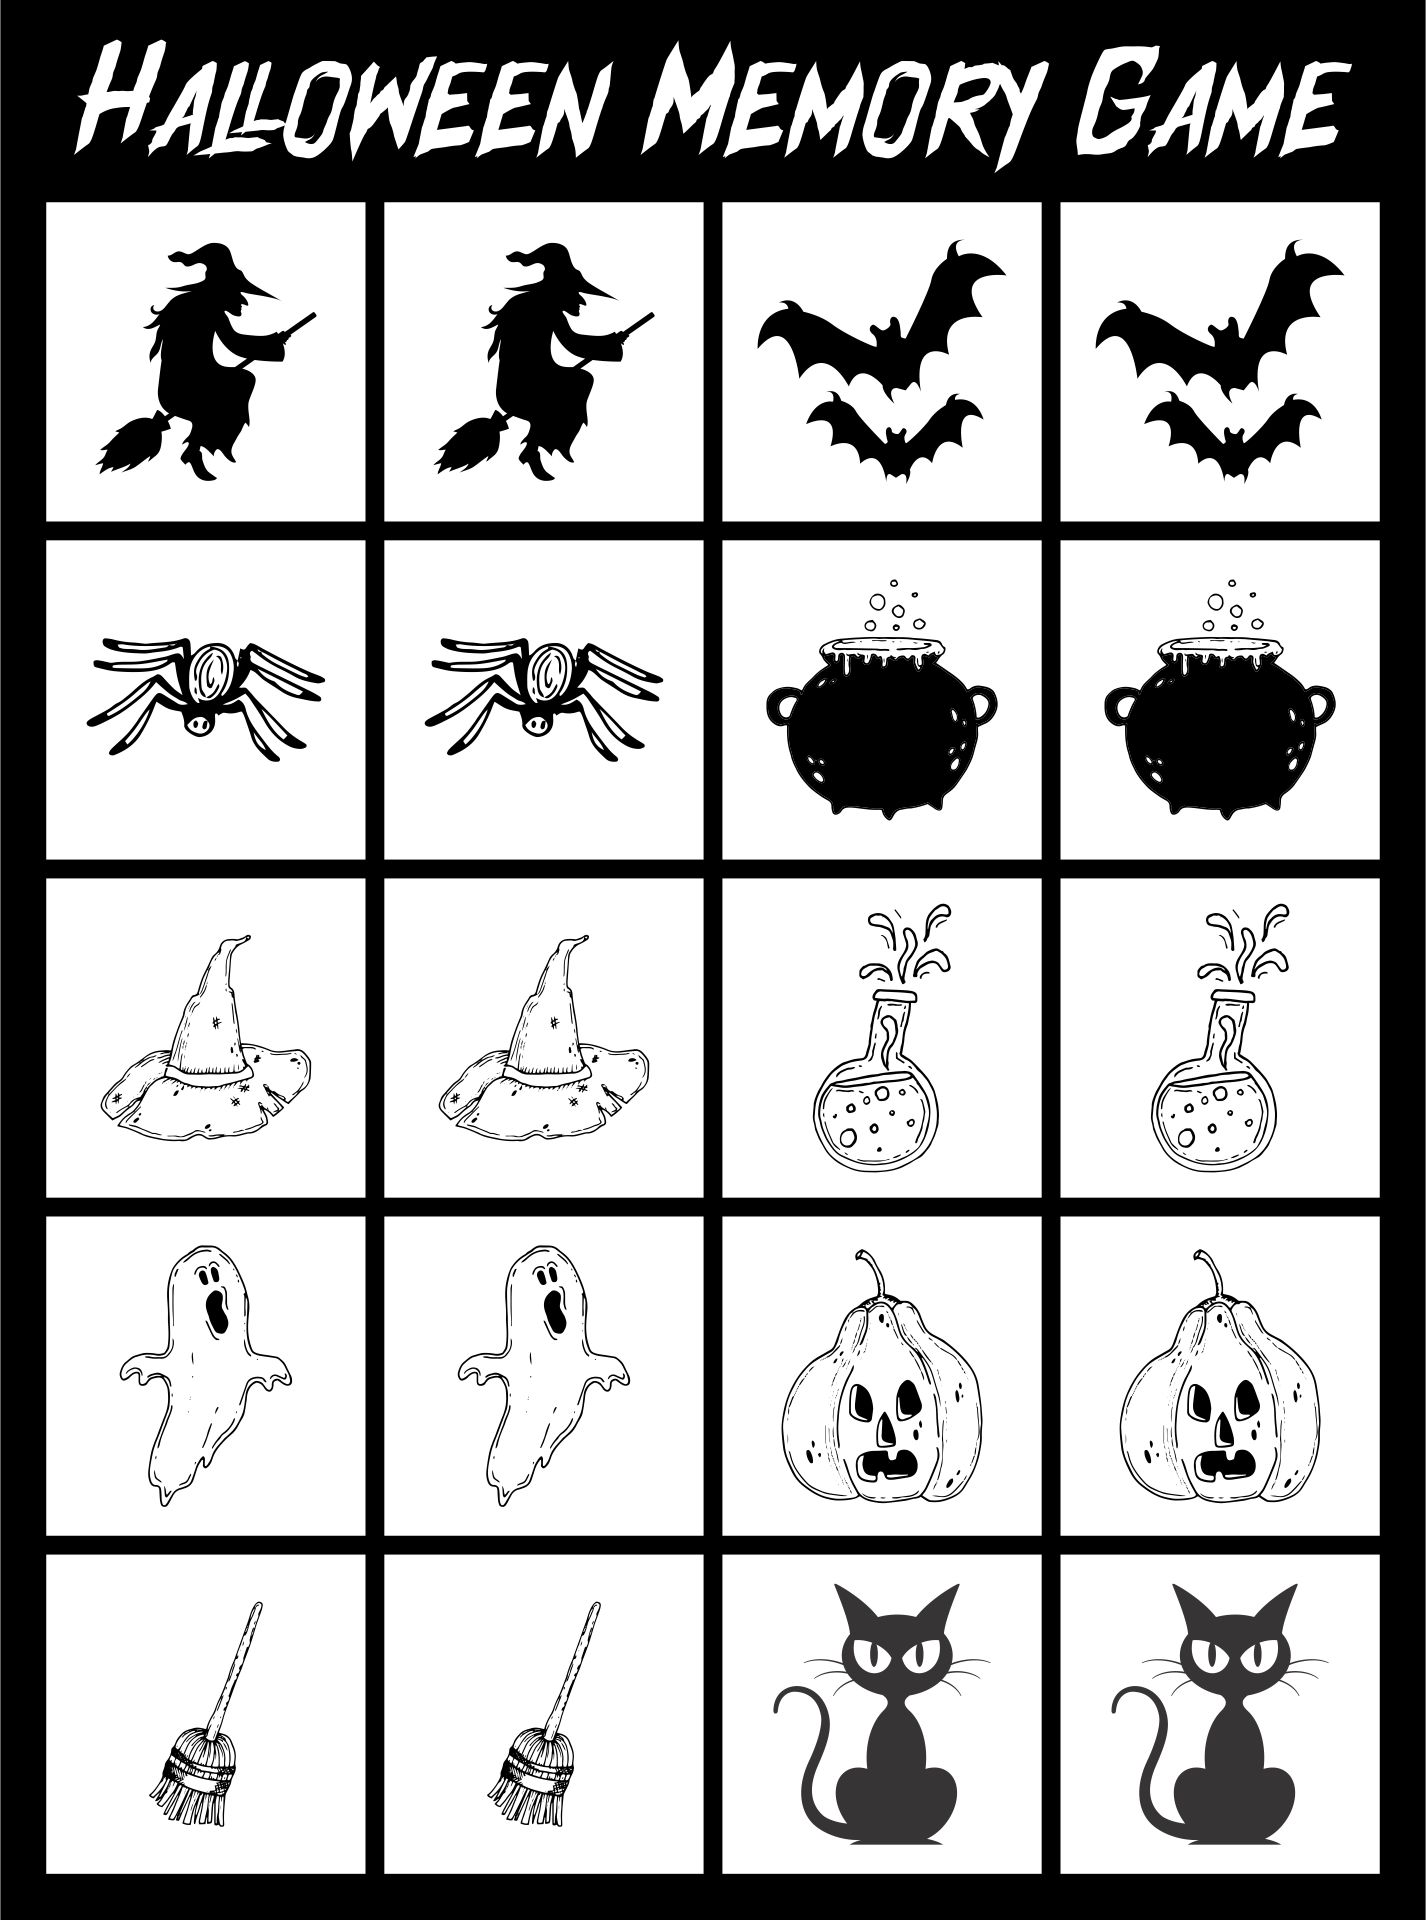 Halloween Memory-Style Game To Print